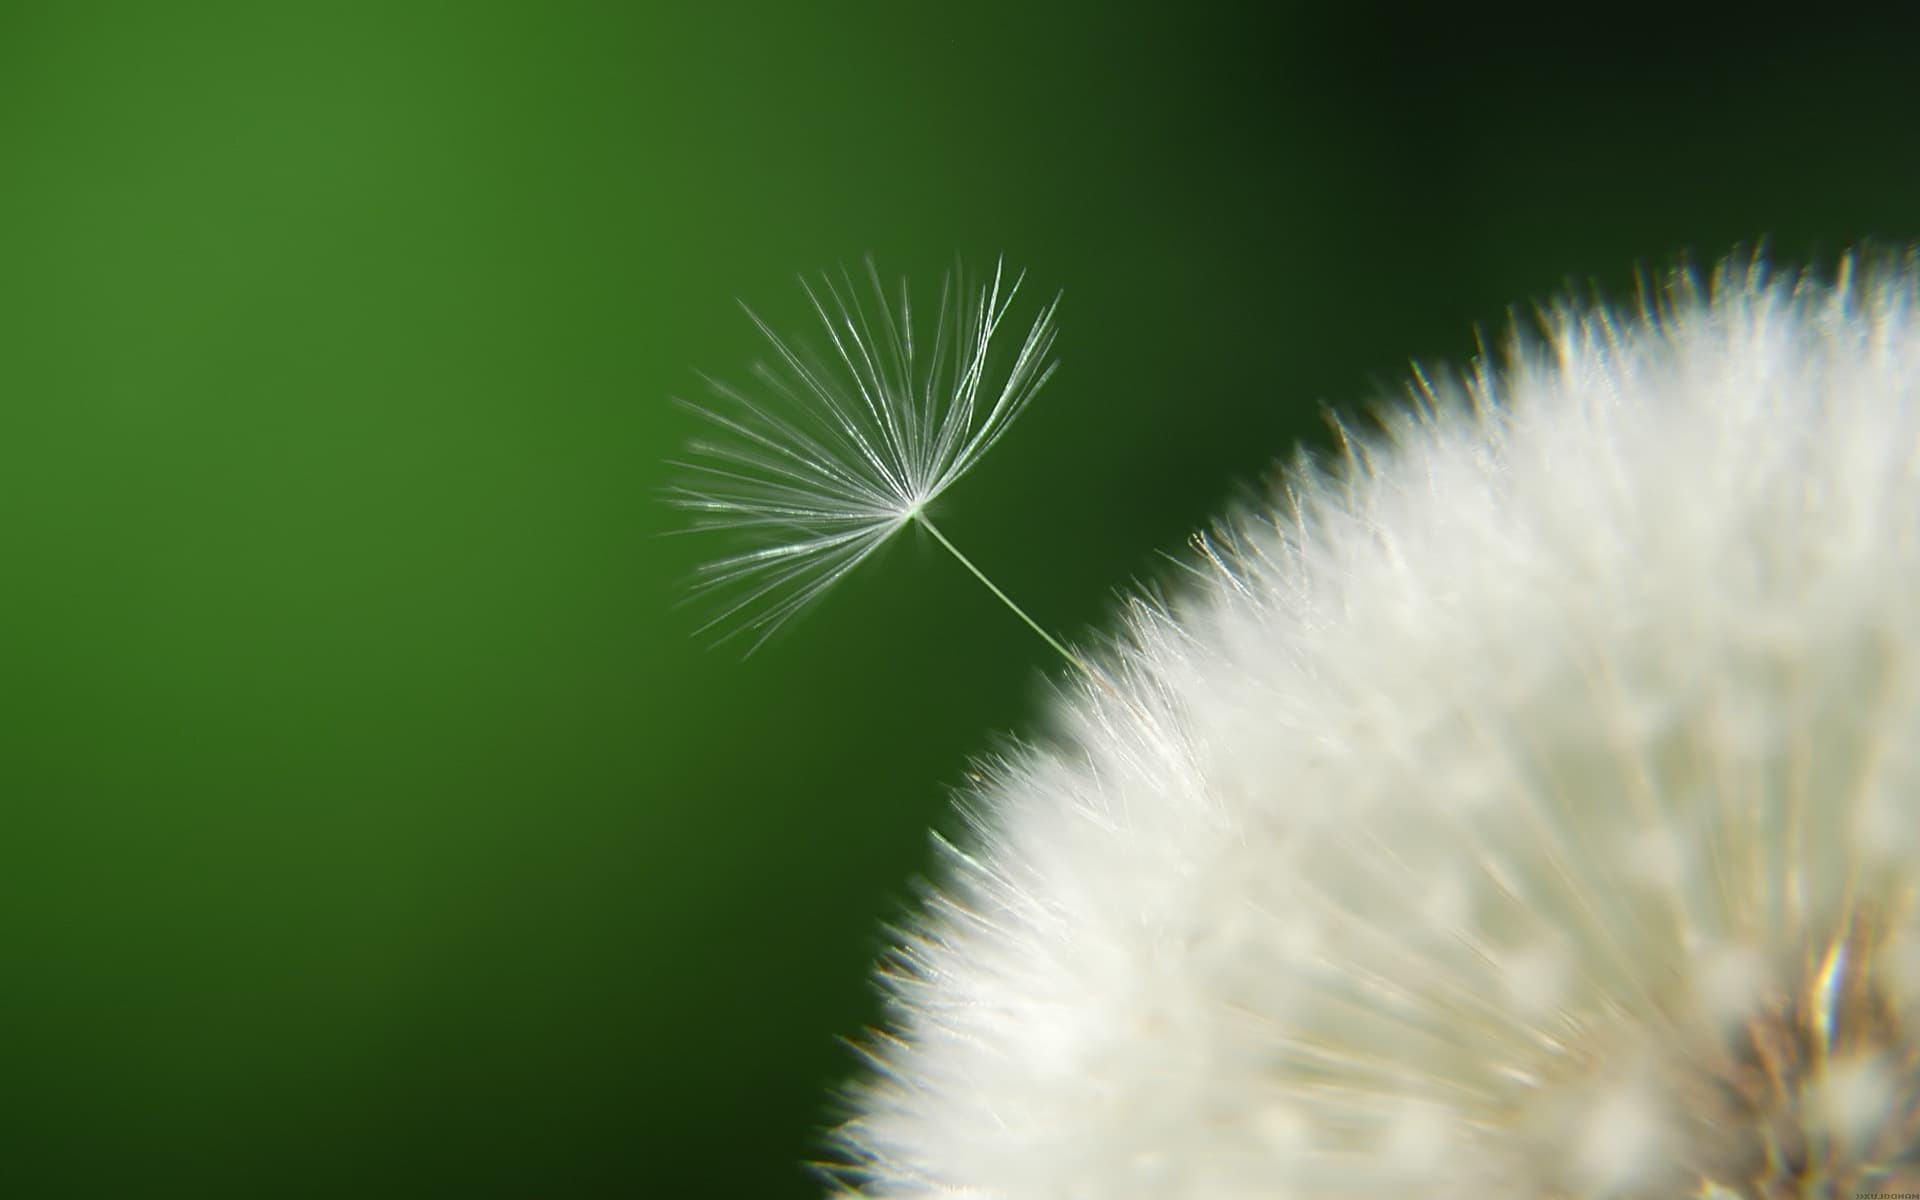 Hd 3d Computer Wallpapers Dandelion Flower Wallpaper Flying In The Beautiful Wind